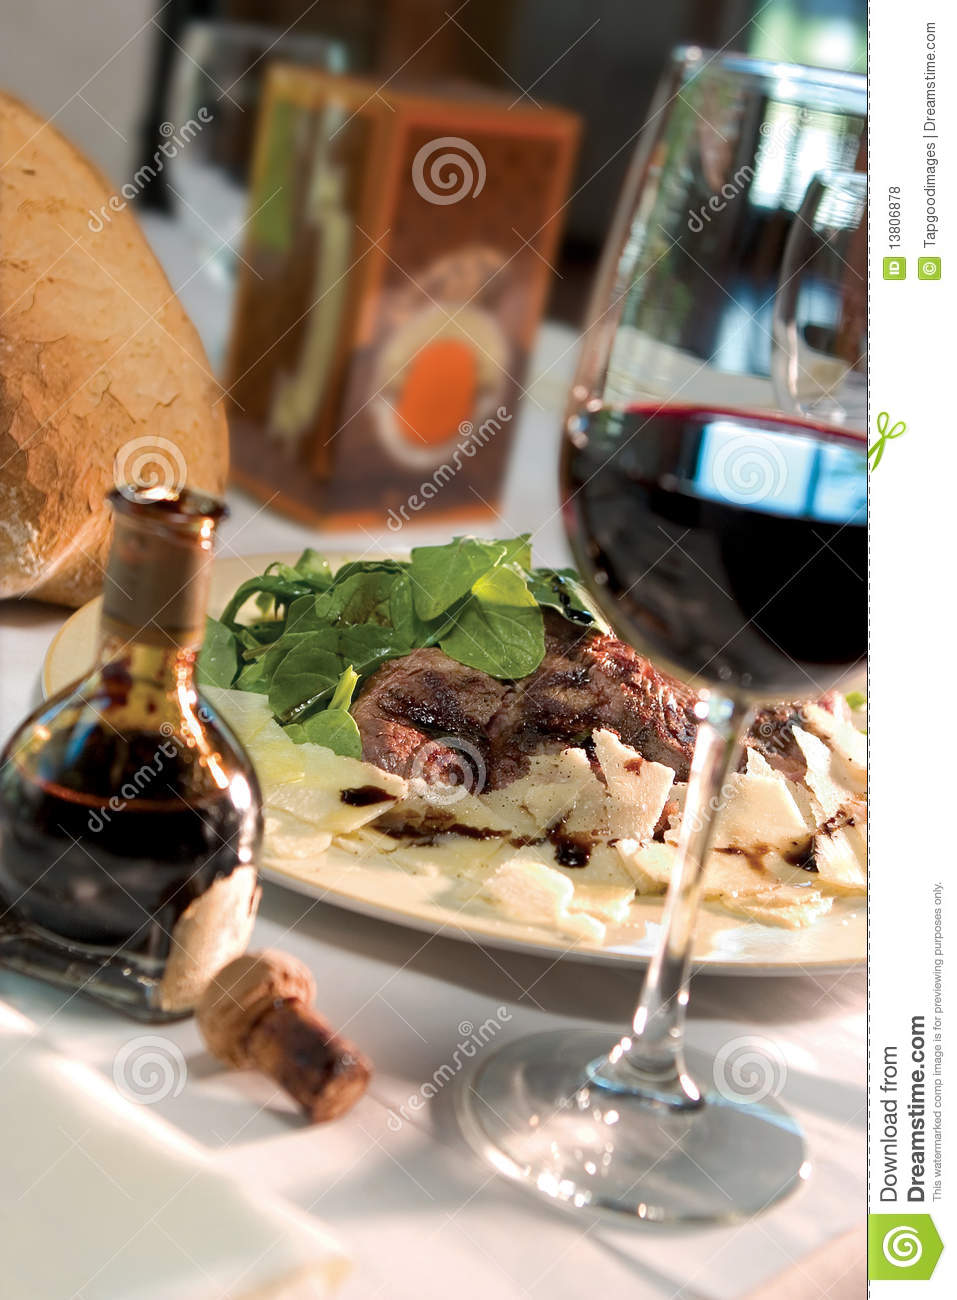 Steak Dinner With Glass Of Wine Royalty Free Stock Photos ...